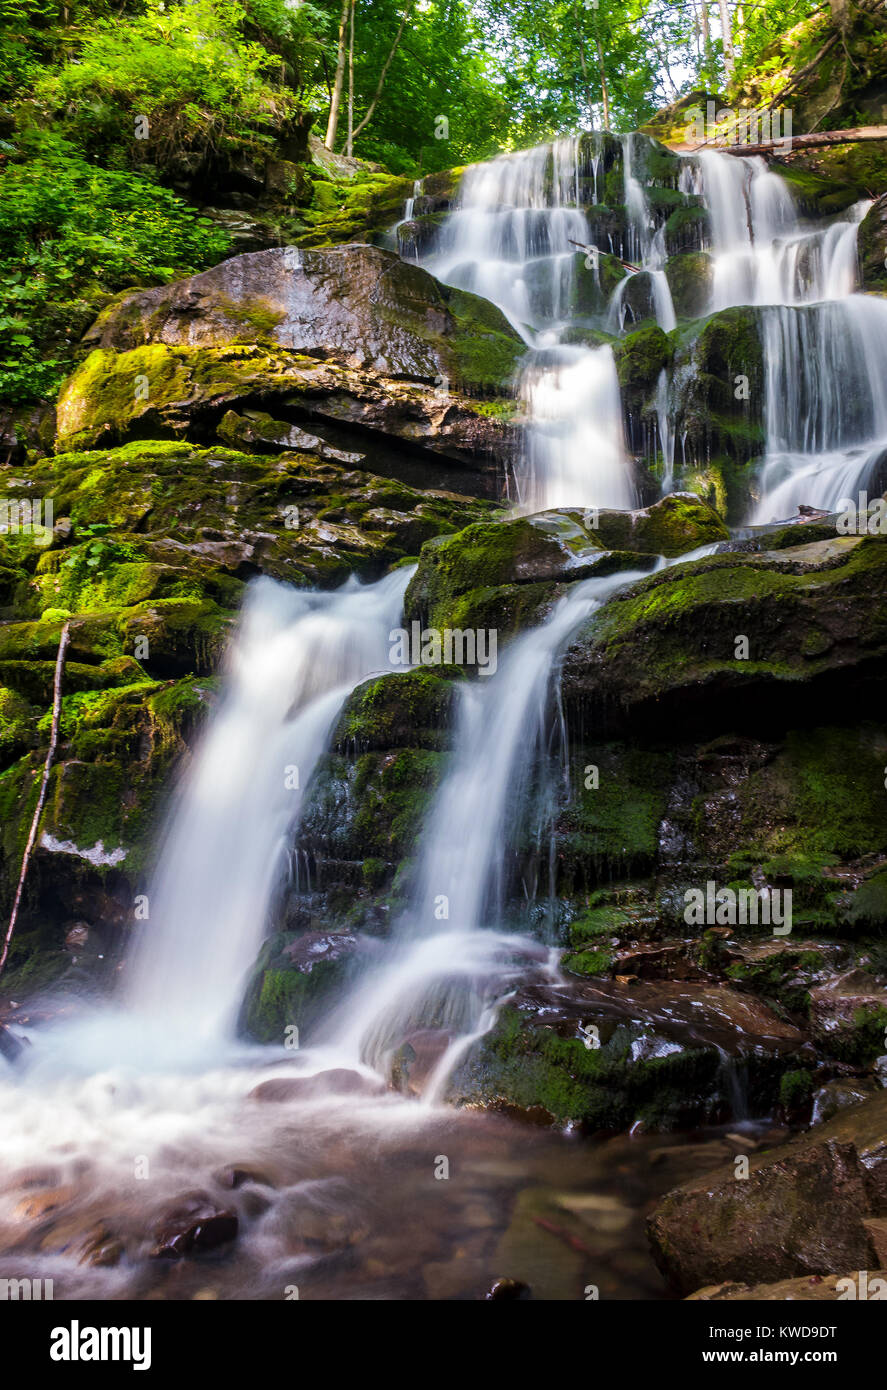 Cold Waters Of Mighty Waterfall Shypot Beautiful Nature Summer Scenery Among Forest One The Most Visited Locations In Carpathian Mountains Ukr